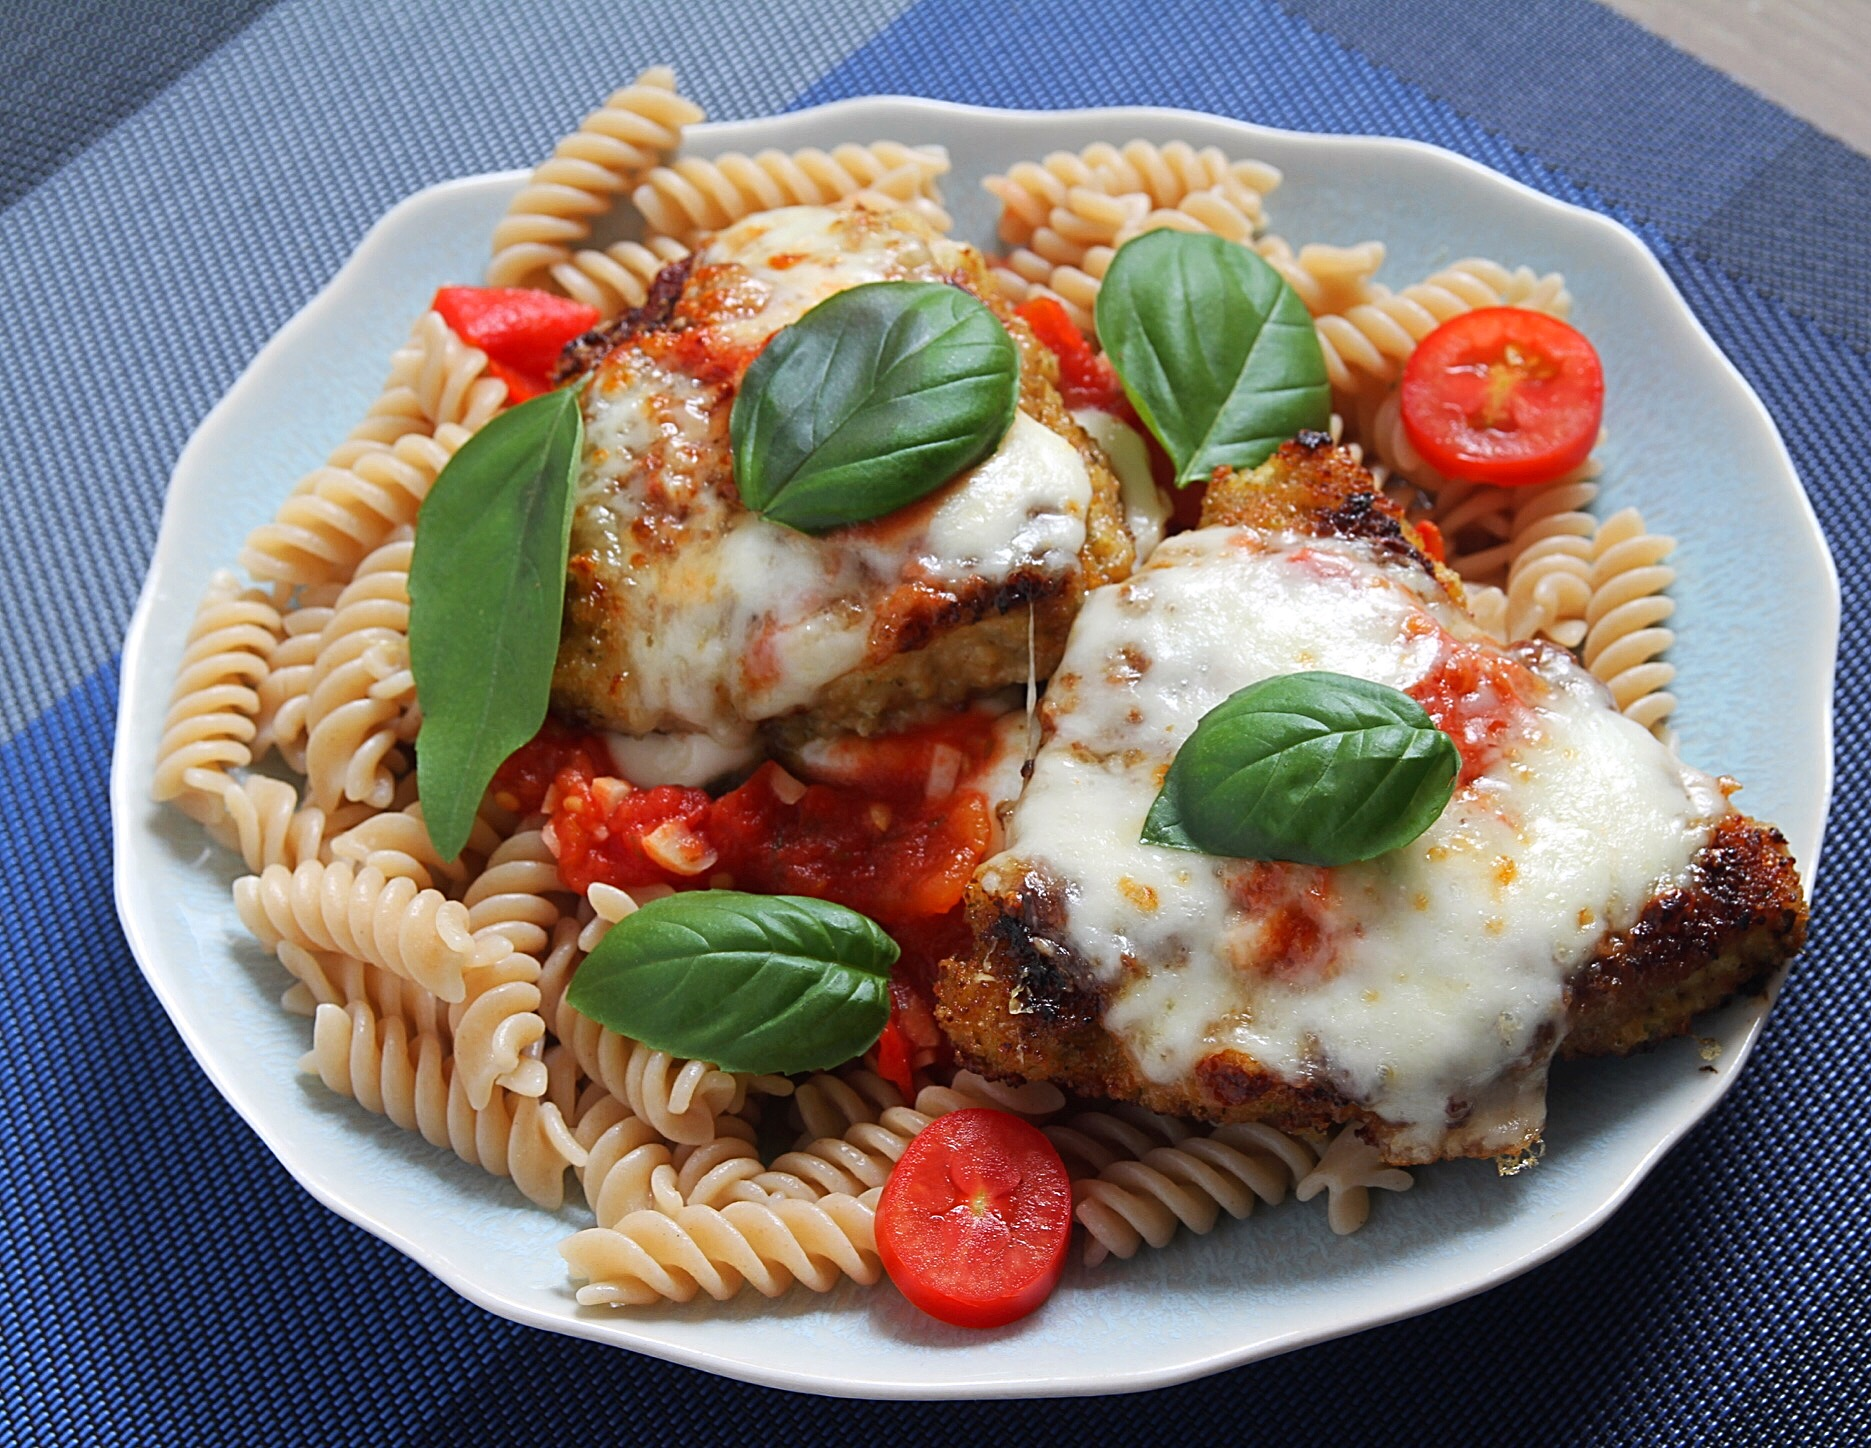 Chicken Parmesan with homemade tomato sauce and fresh basil. GF pasta underneath.